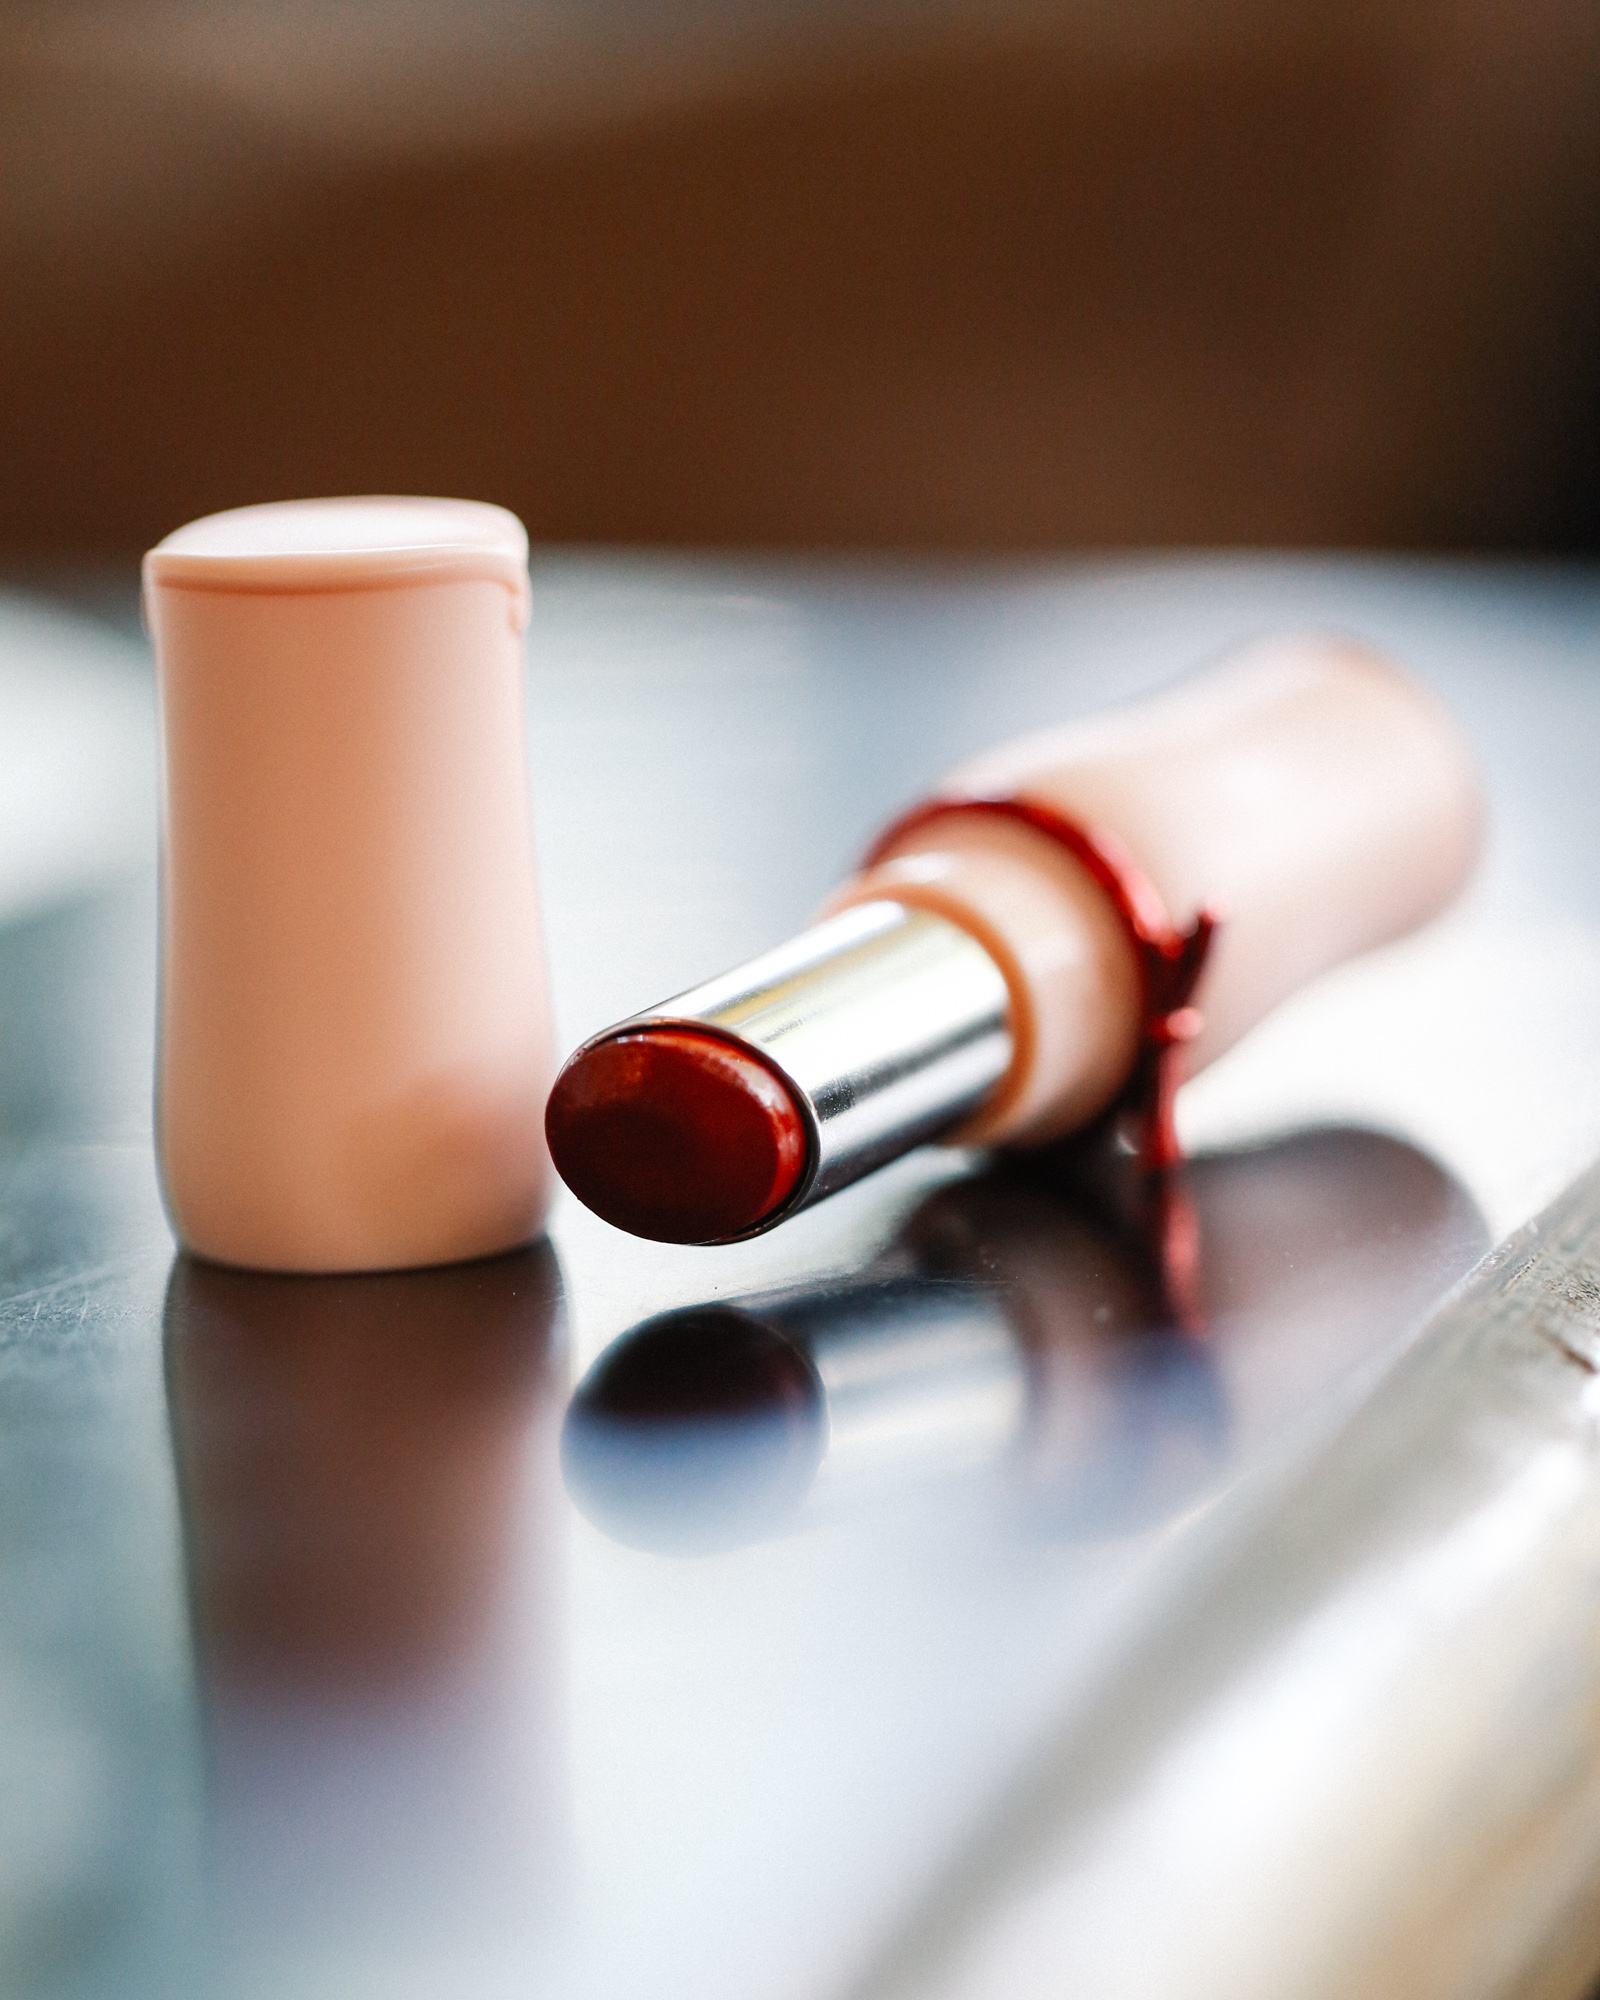 Red lipstick from Etude